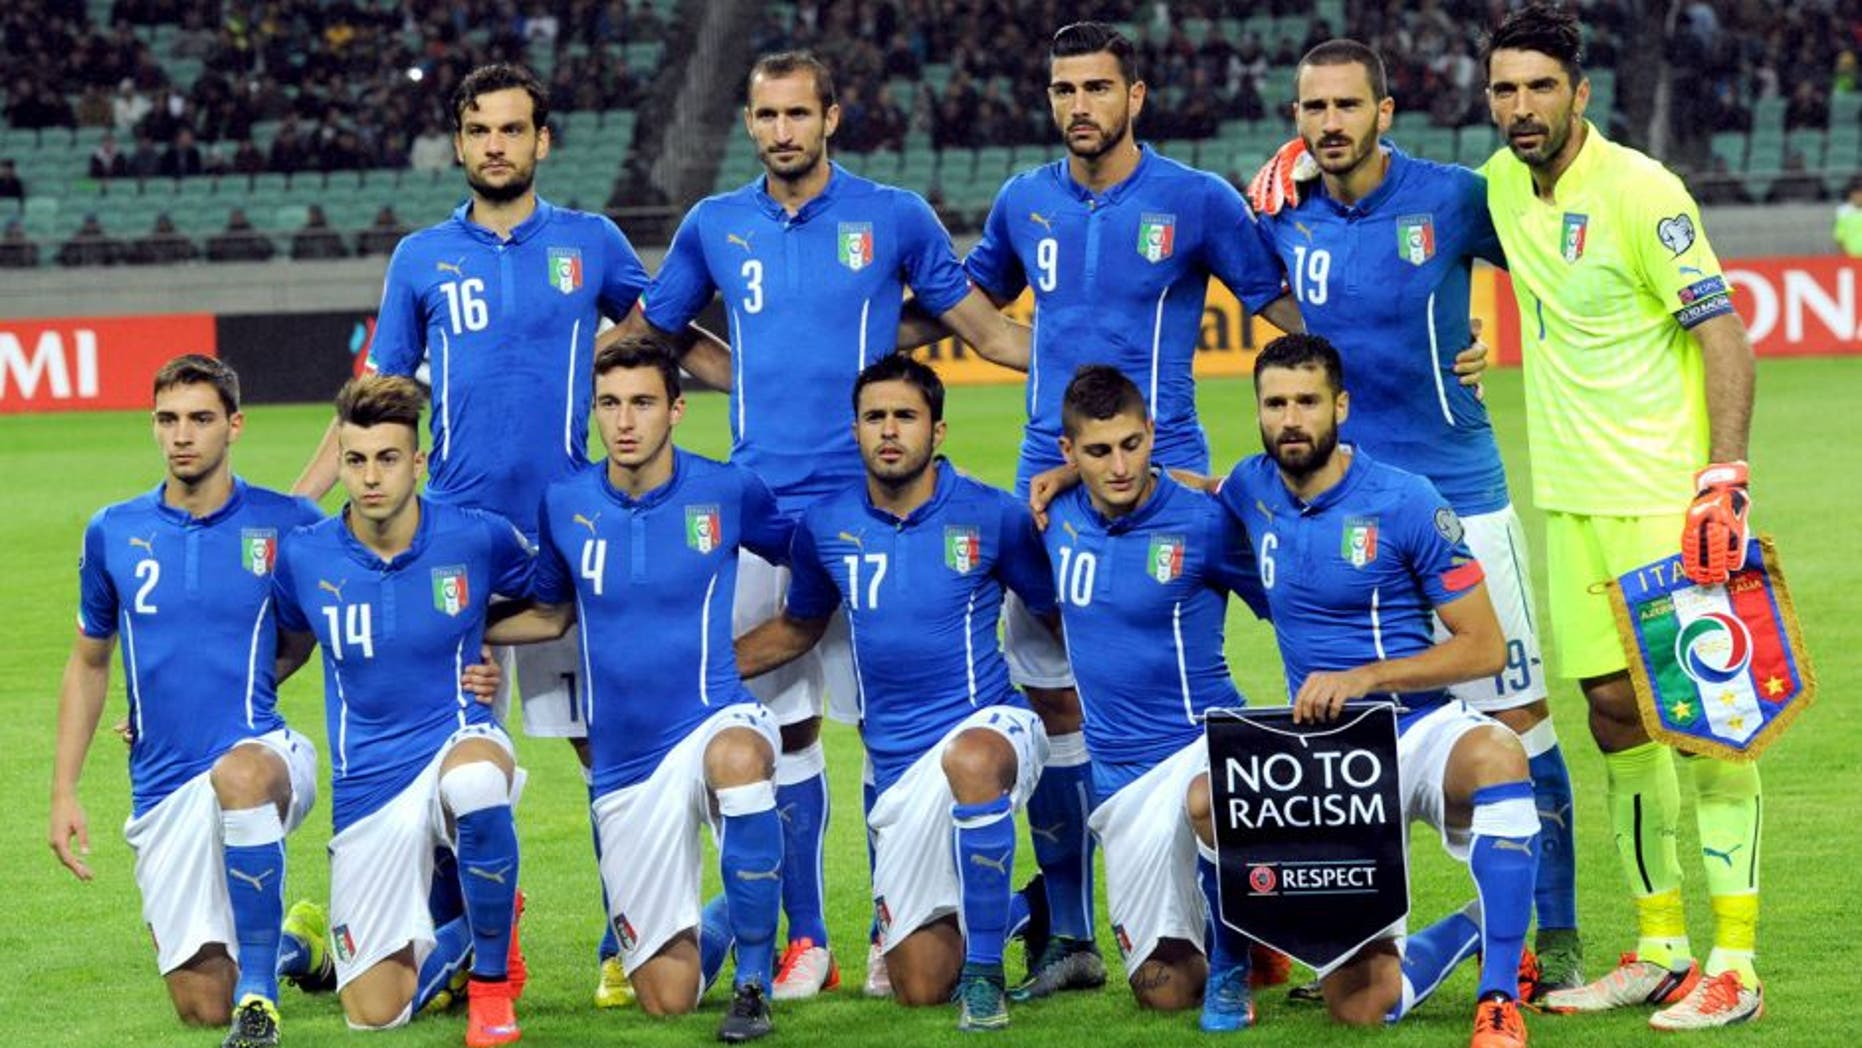 Italy's national team players (top, from left to right) Marco Parolo, Giorgio Chiellini, Graziano Pelle, Leonardo Bonucci, Gianluigi Buffon and (lower, from left to right) Mattia De Sciglio, Stephan El Shaarawy, Matteo Darmian, Eder, Marco Verratti, Antonio Candreva pose before qualifying football match (group H) Euro 2016 against Azerbaijan on October 10, 2015 at the Baku Olympia stadium in Baku. AFP PHOTO / VANO SHLAMOV (Photo credit should read VANO SHLAMOV/AFP/Getty Images)